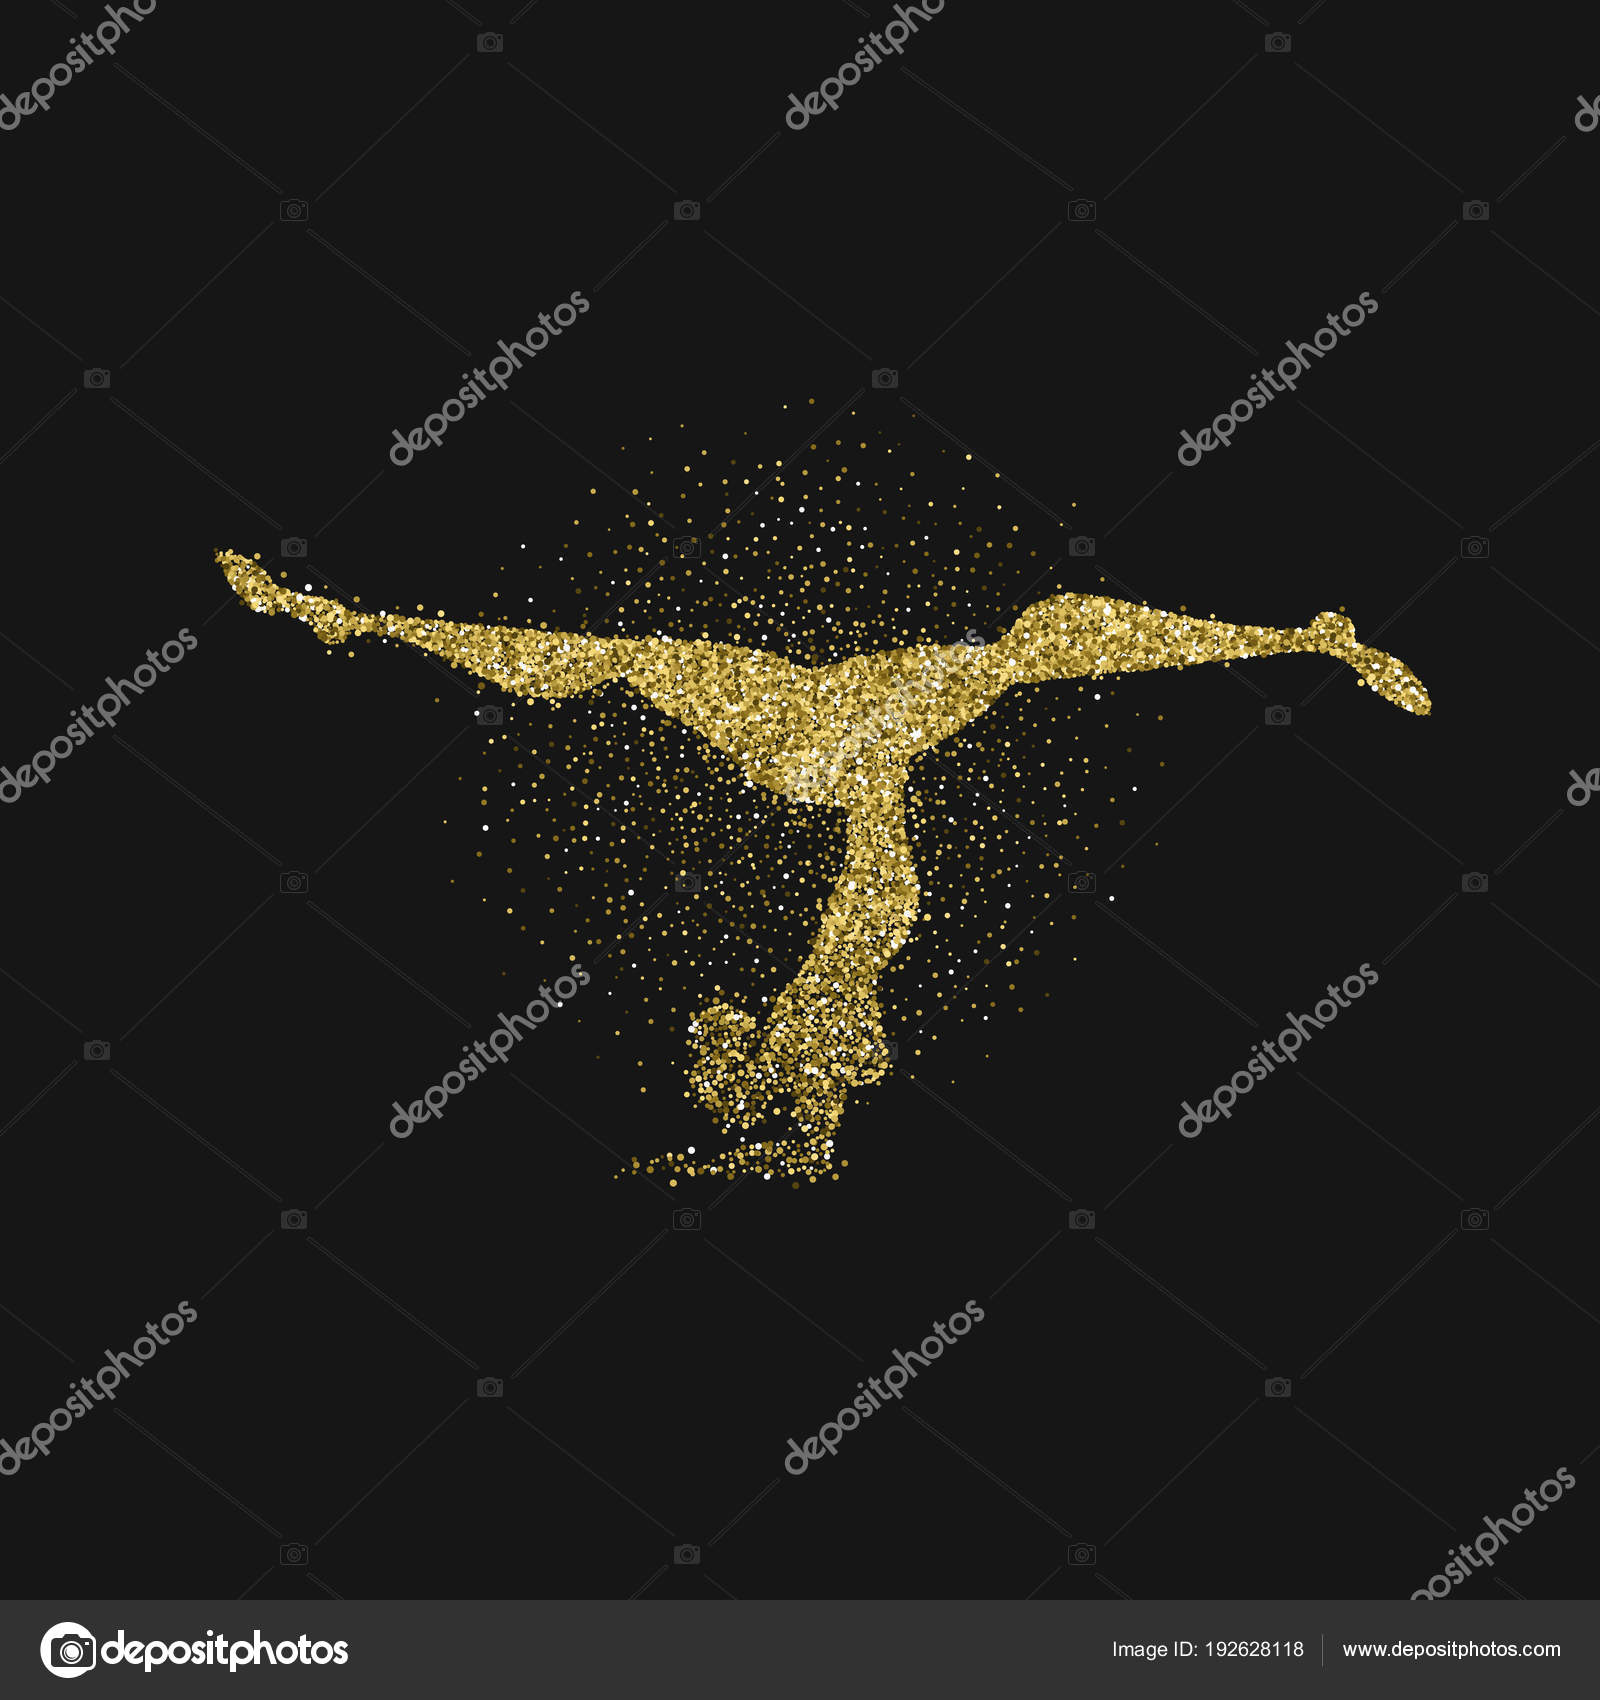 Yoga Pose Silhouette Made Of Gold Glitter Dust On Black Background Golden Color Girl Doing Meditation Exercise EPS10 Vector By Cienpies